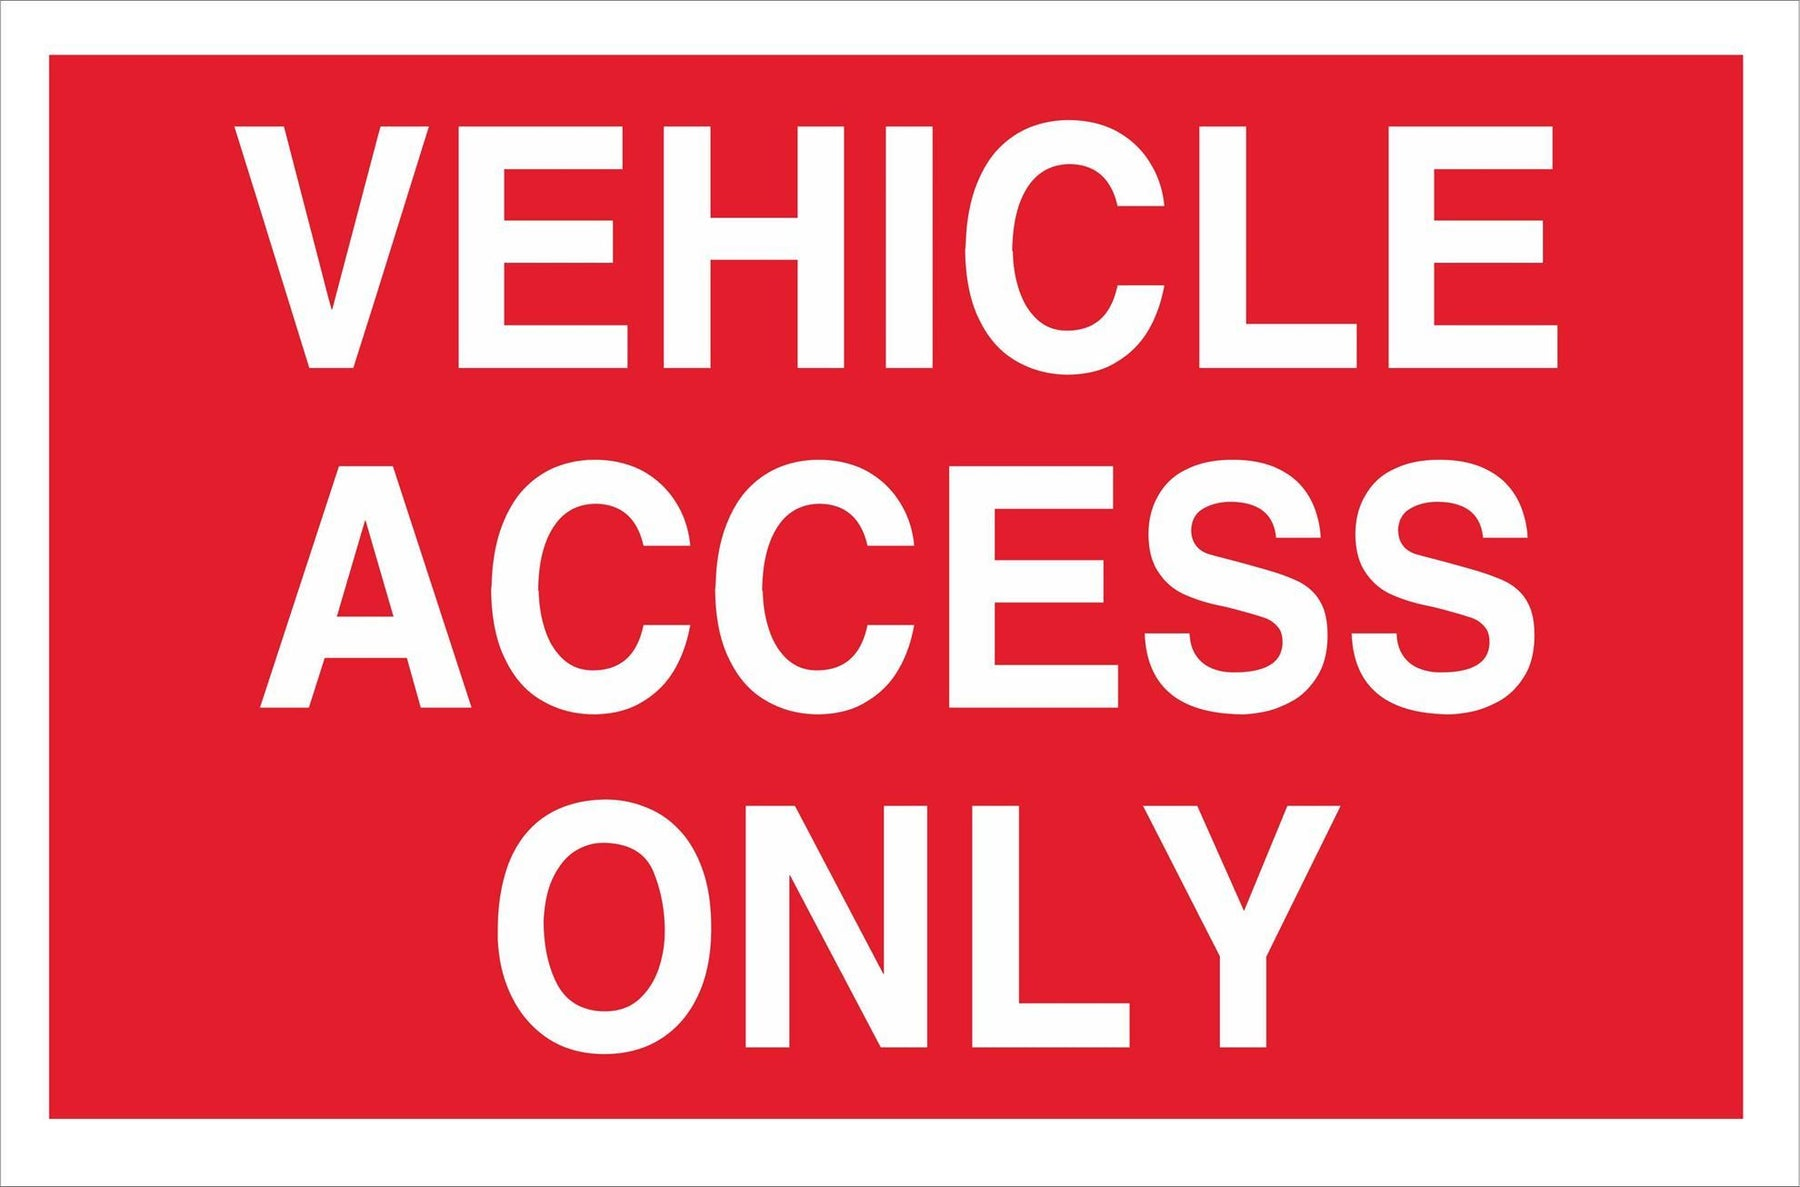 VEHICLE ACCESS ONLY